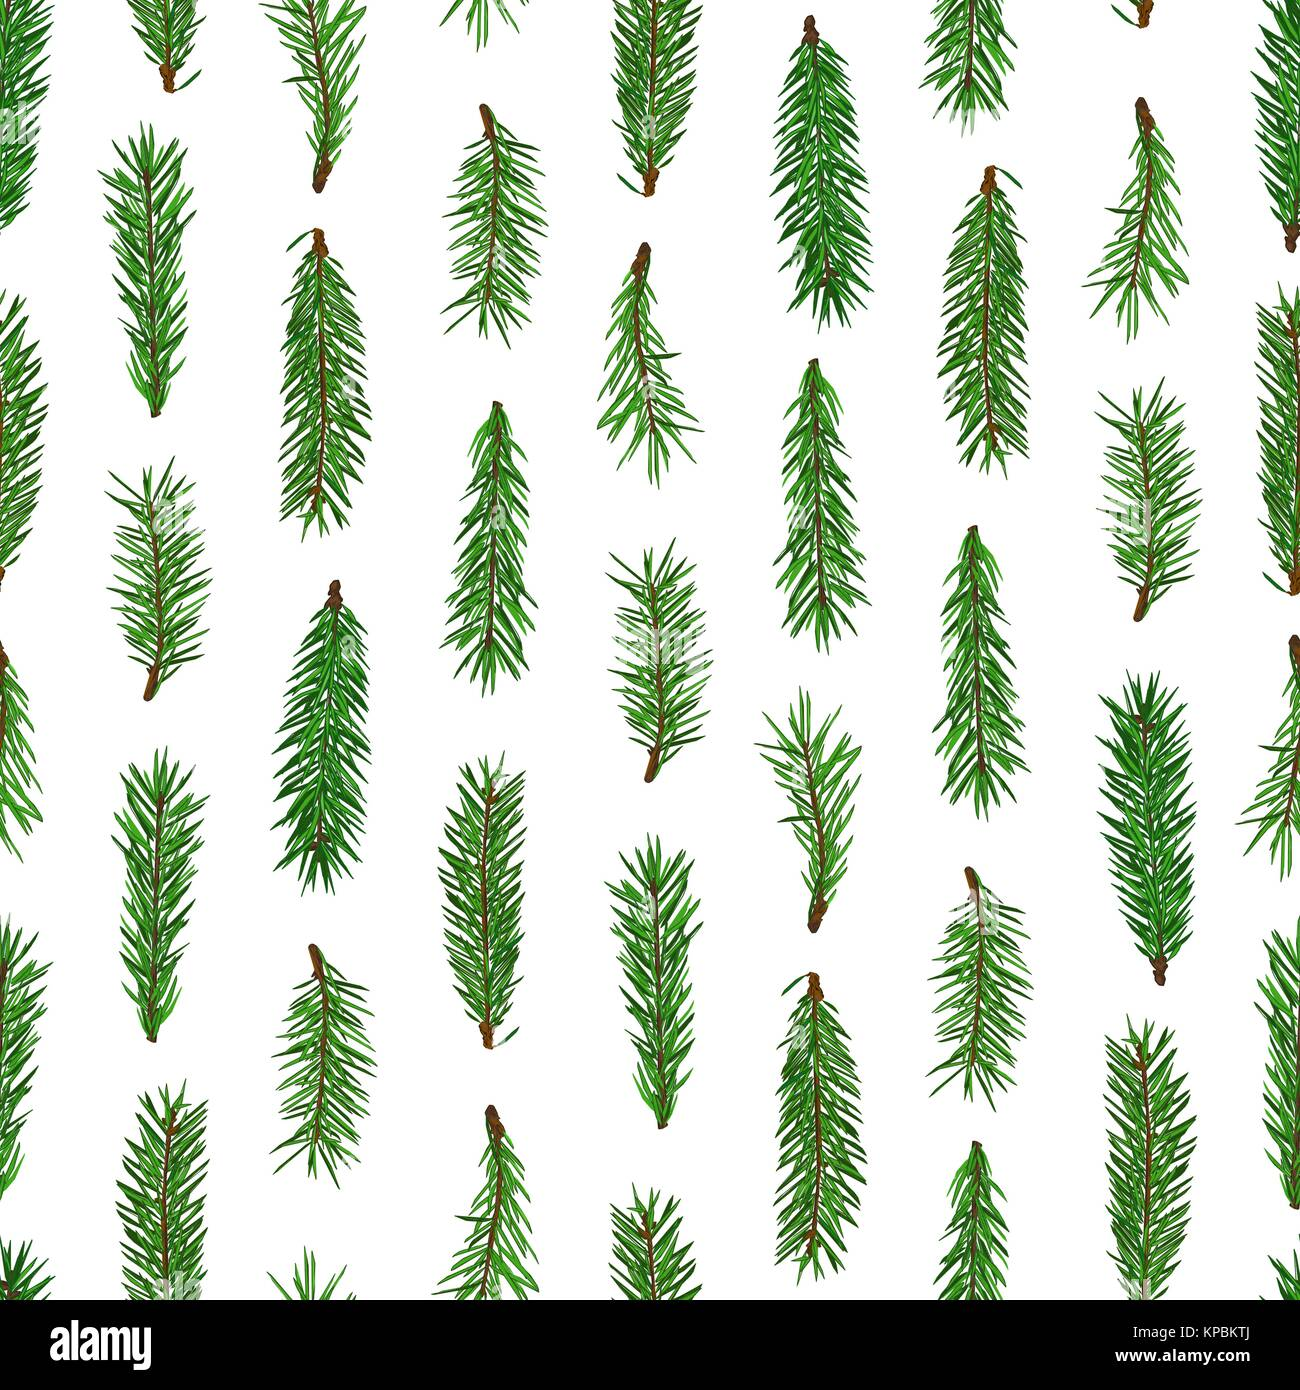 Realistic Green Fir Tree Branches Seamless Pattern On White Stock